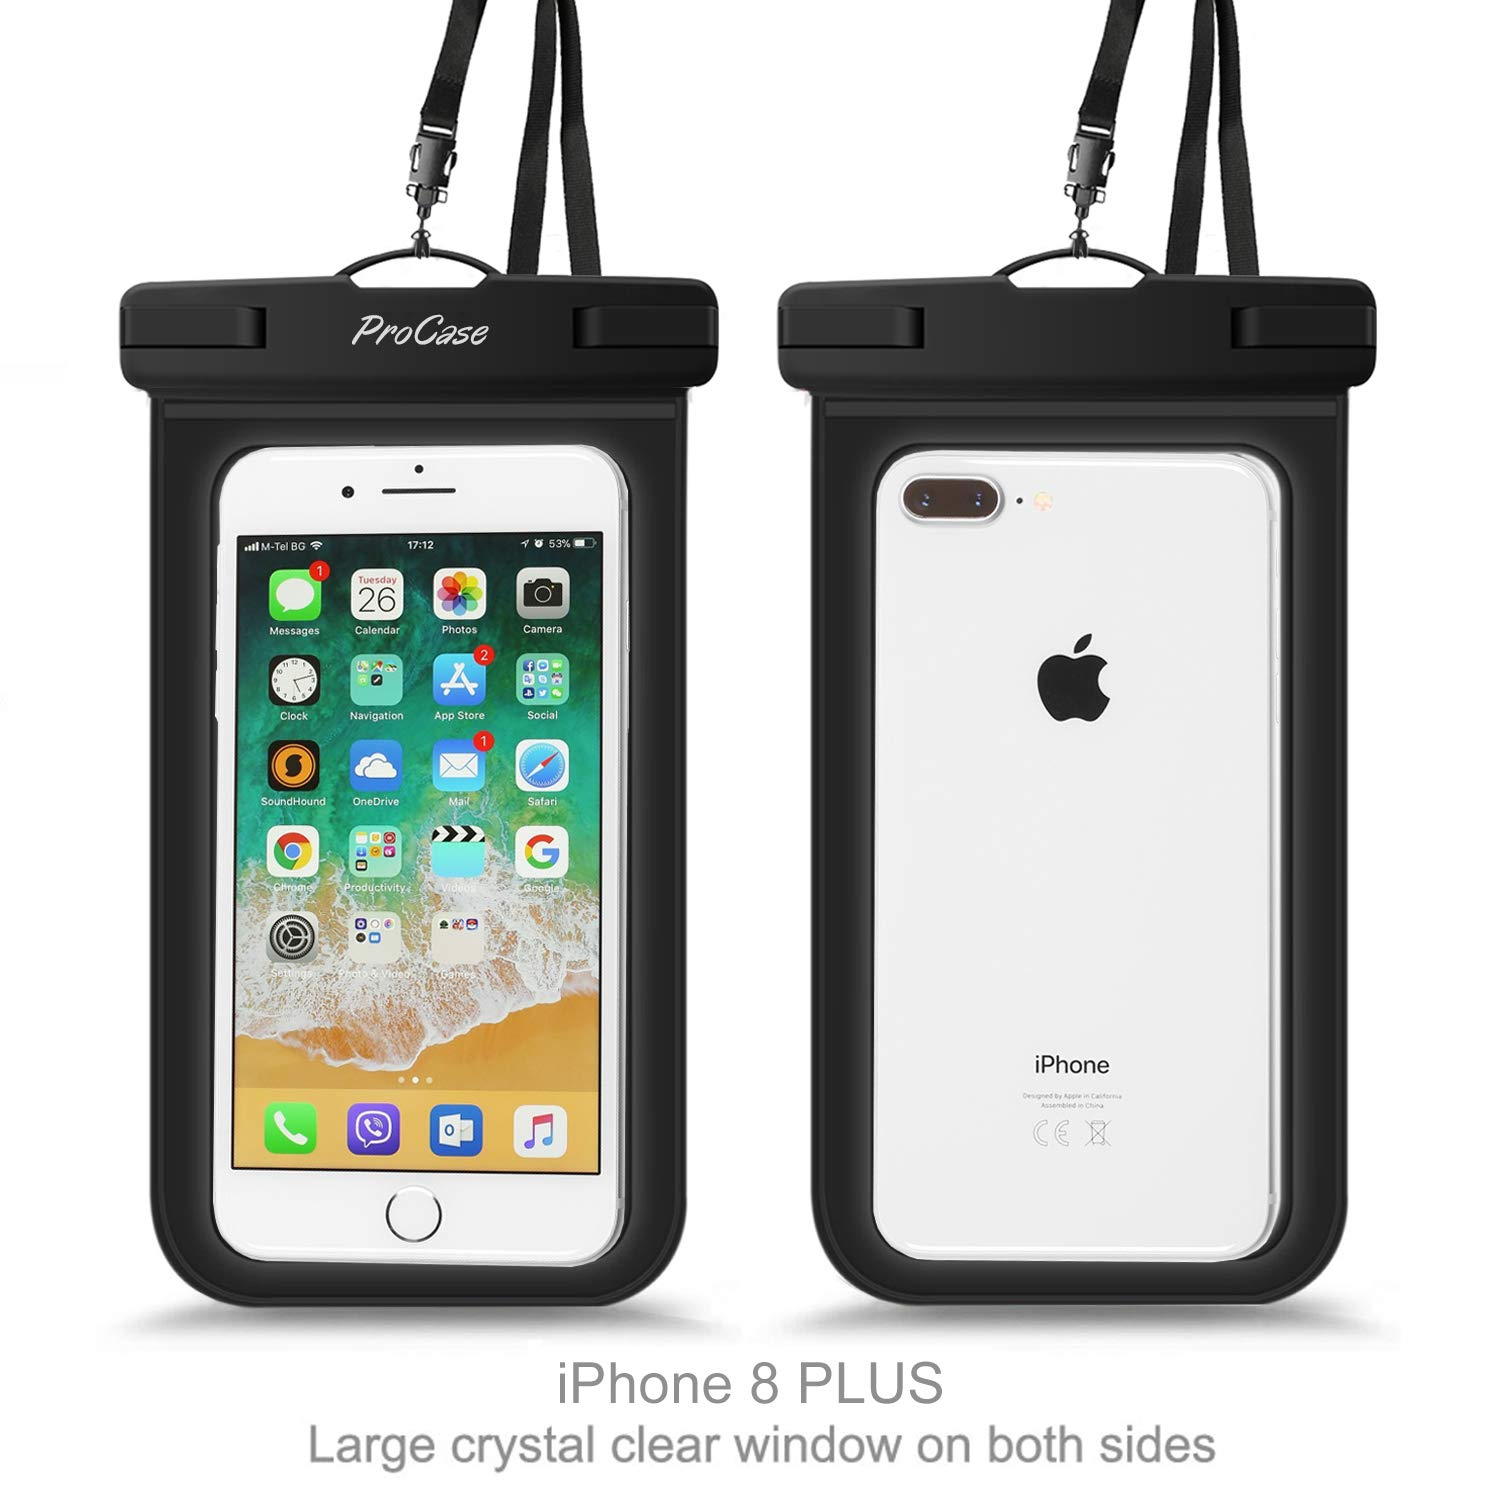 Galaxy S10 Plus S10e S9 S8 +//Note 9 8 Pixel 3a 2 XL up to 6.5-2 Pack ProCase Universal Waterproof Pouch IPX8 Waterproof Cellphone Dry Bag Underwater Case for iPhone Xs Max XR X 8 7 6S Plus Black